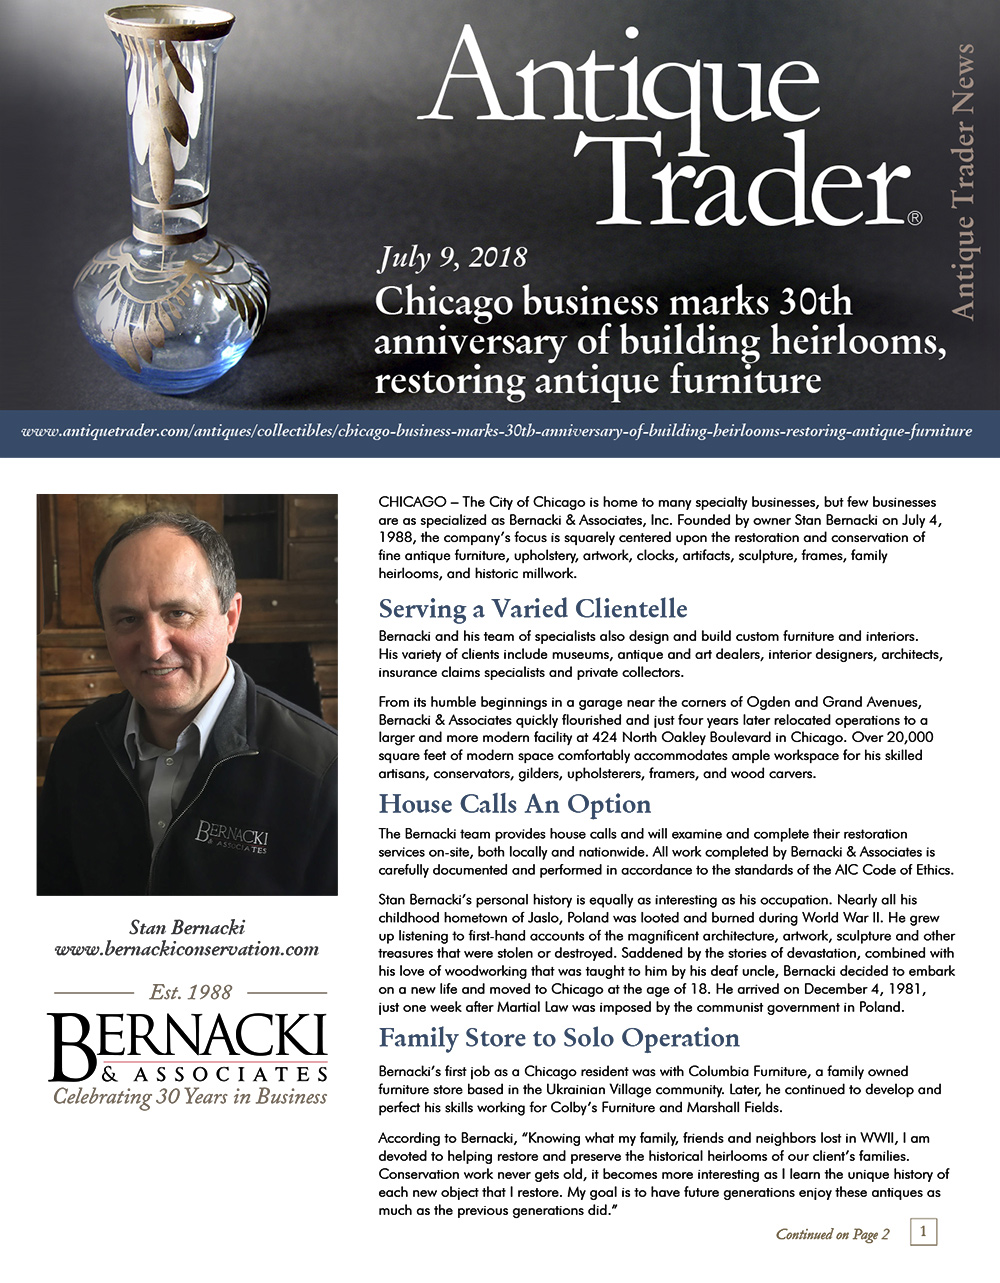 Bernacki & Associates, Inc. featured in  Antique Trader : Chicago business marks 30th anniversary of building heirlooms, restoring antique furniture